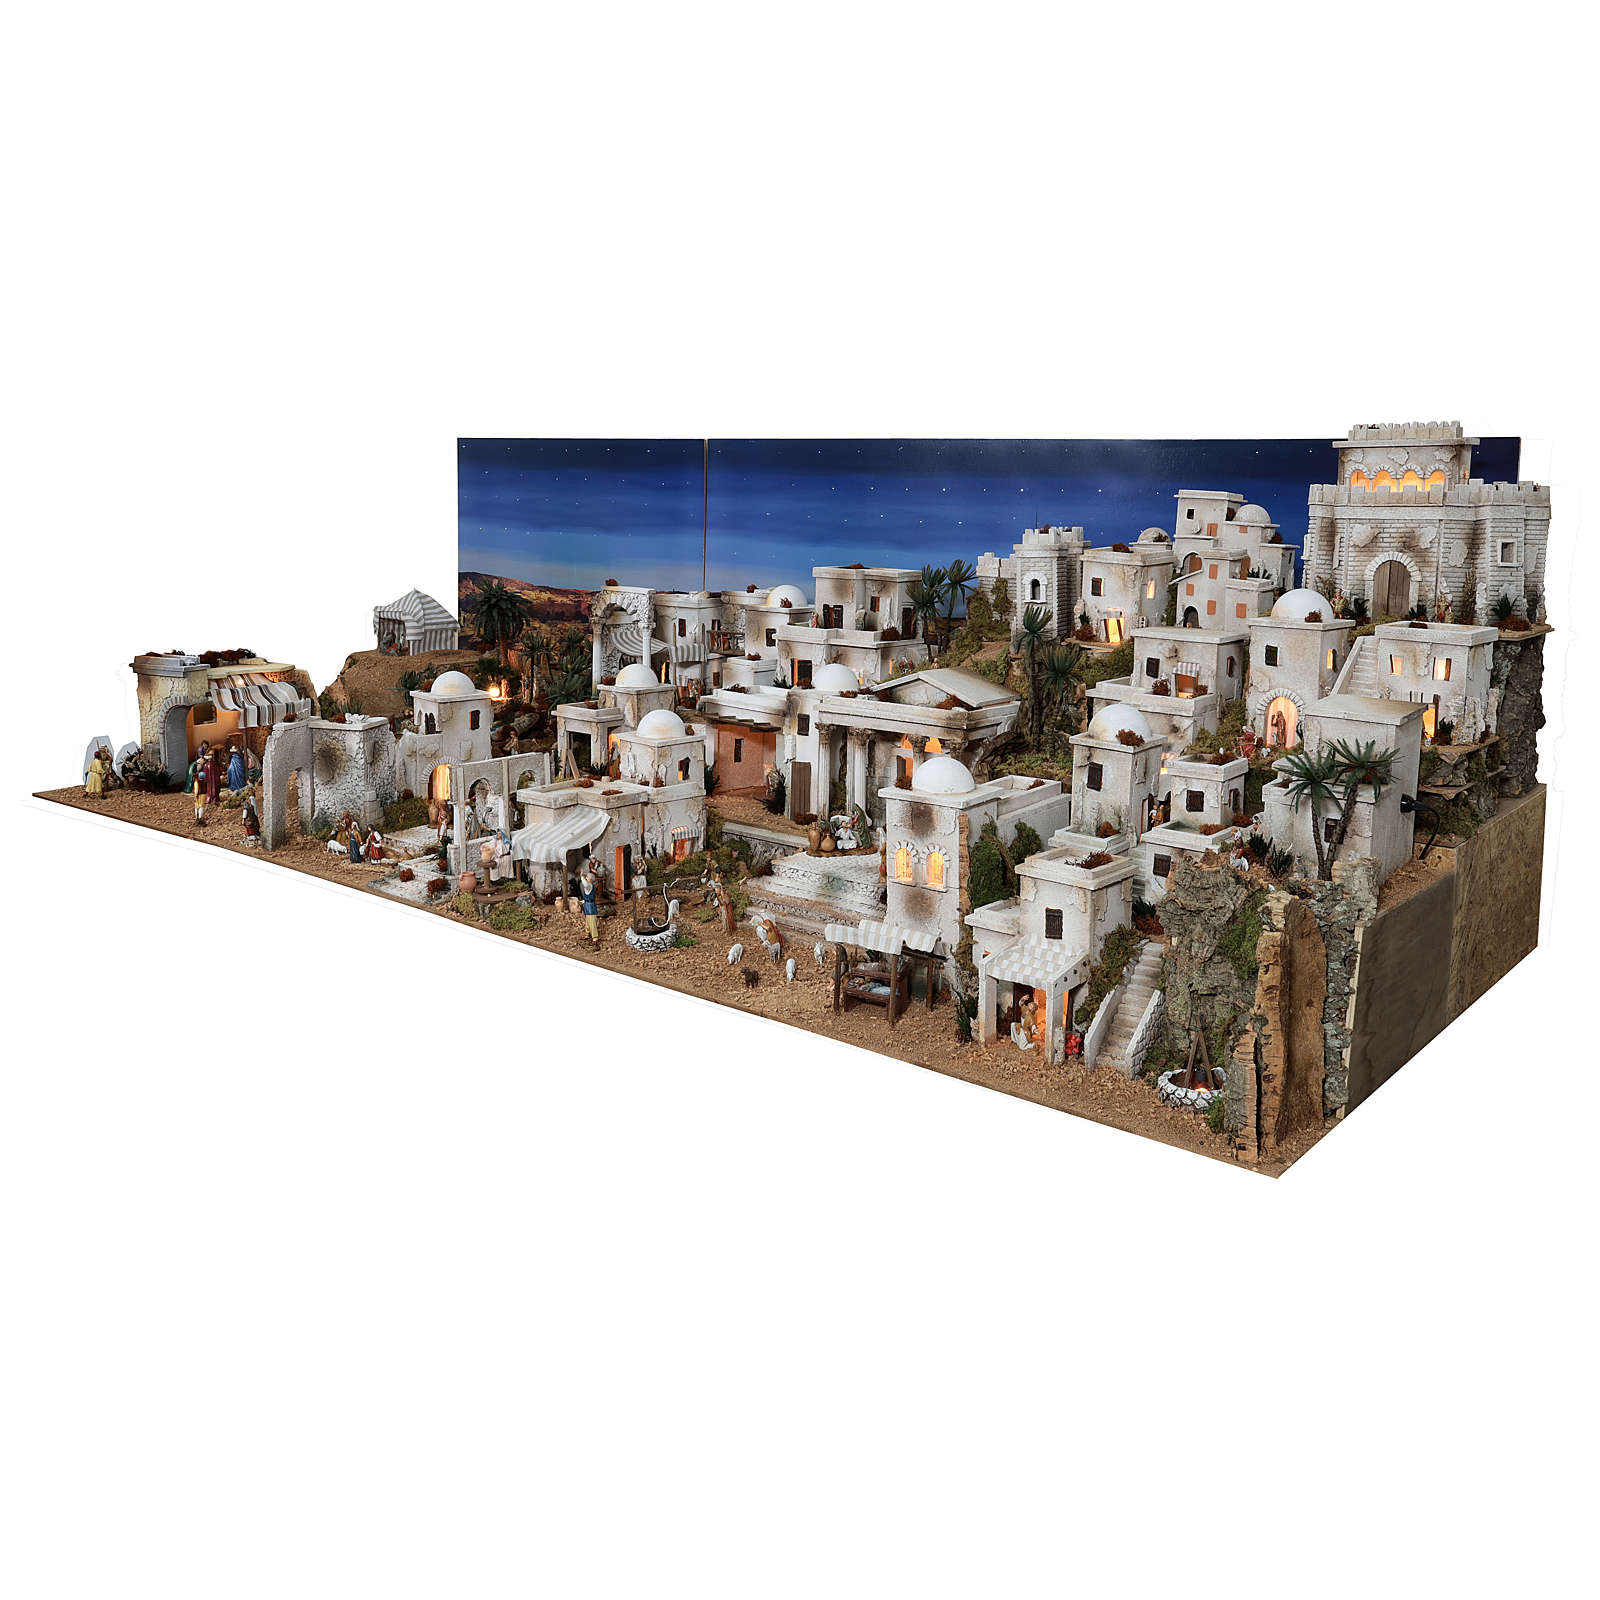 Complete Nativity scene with historical Palestinian setting 100x320x120 cm Moranduzzo statues 4